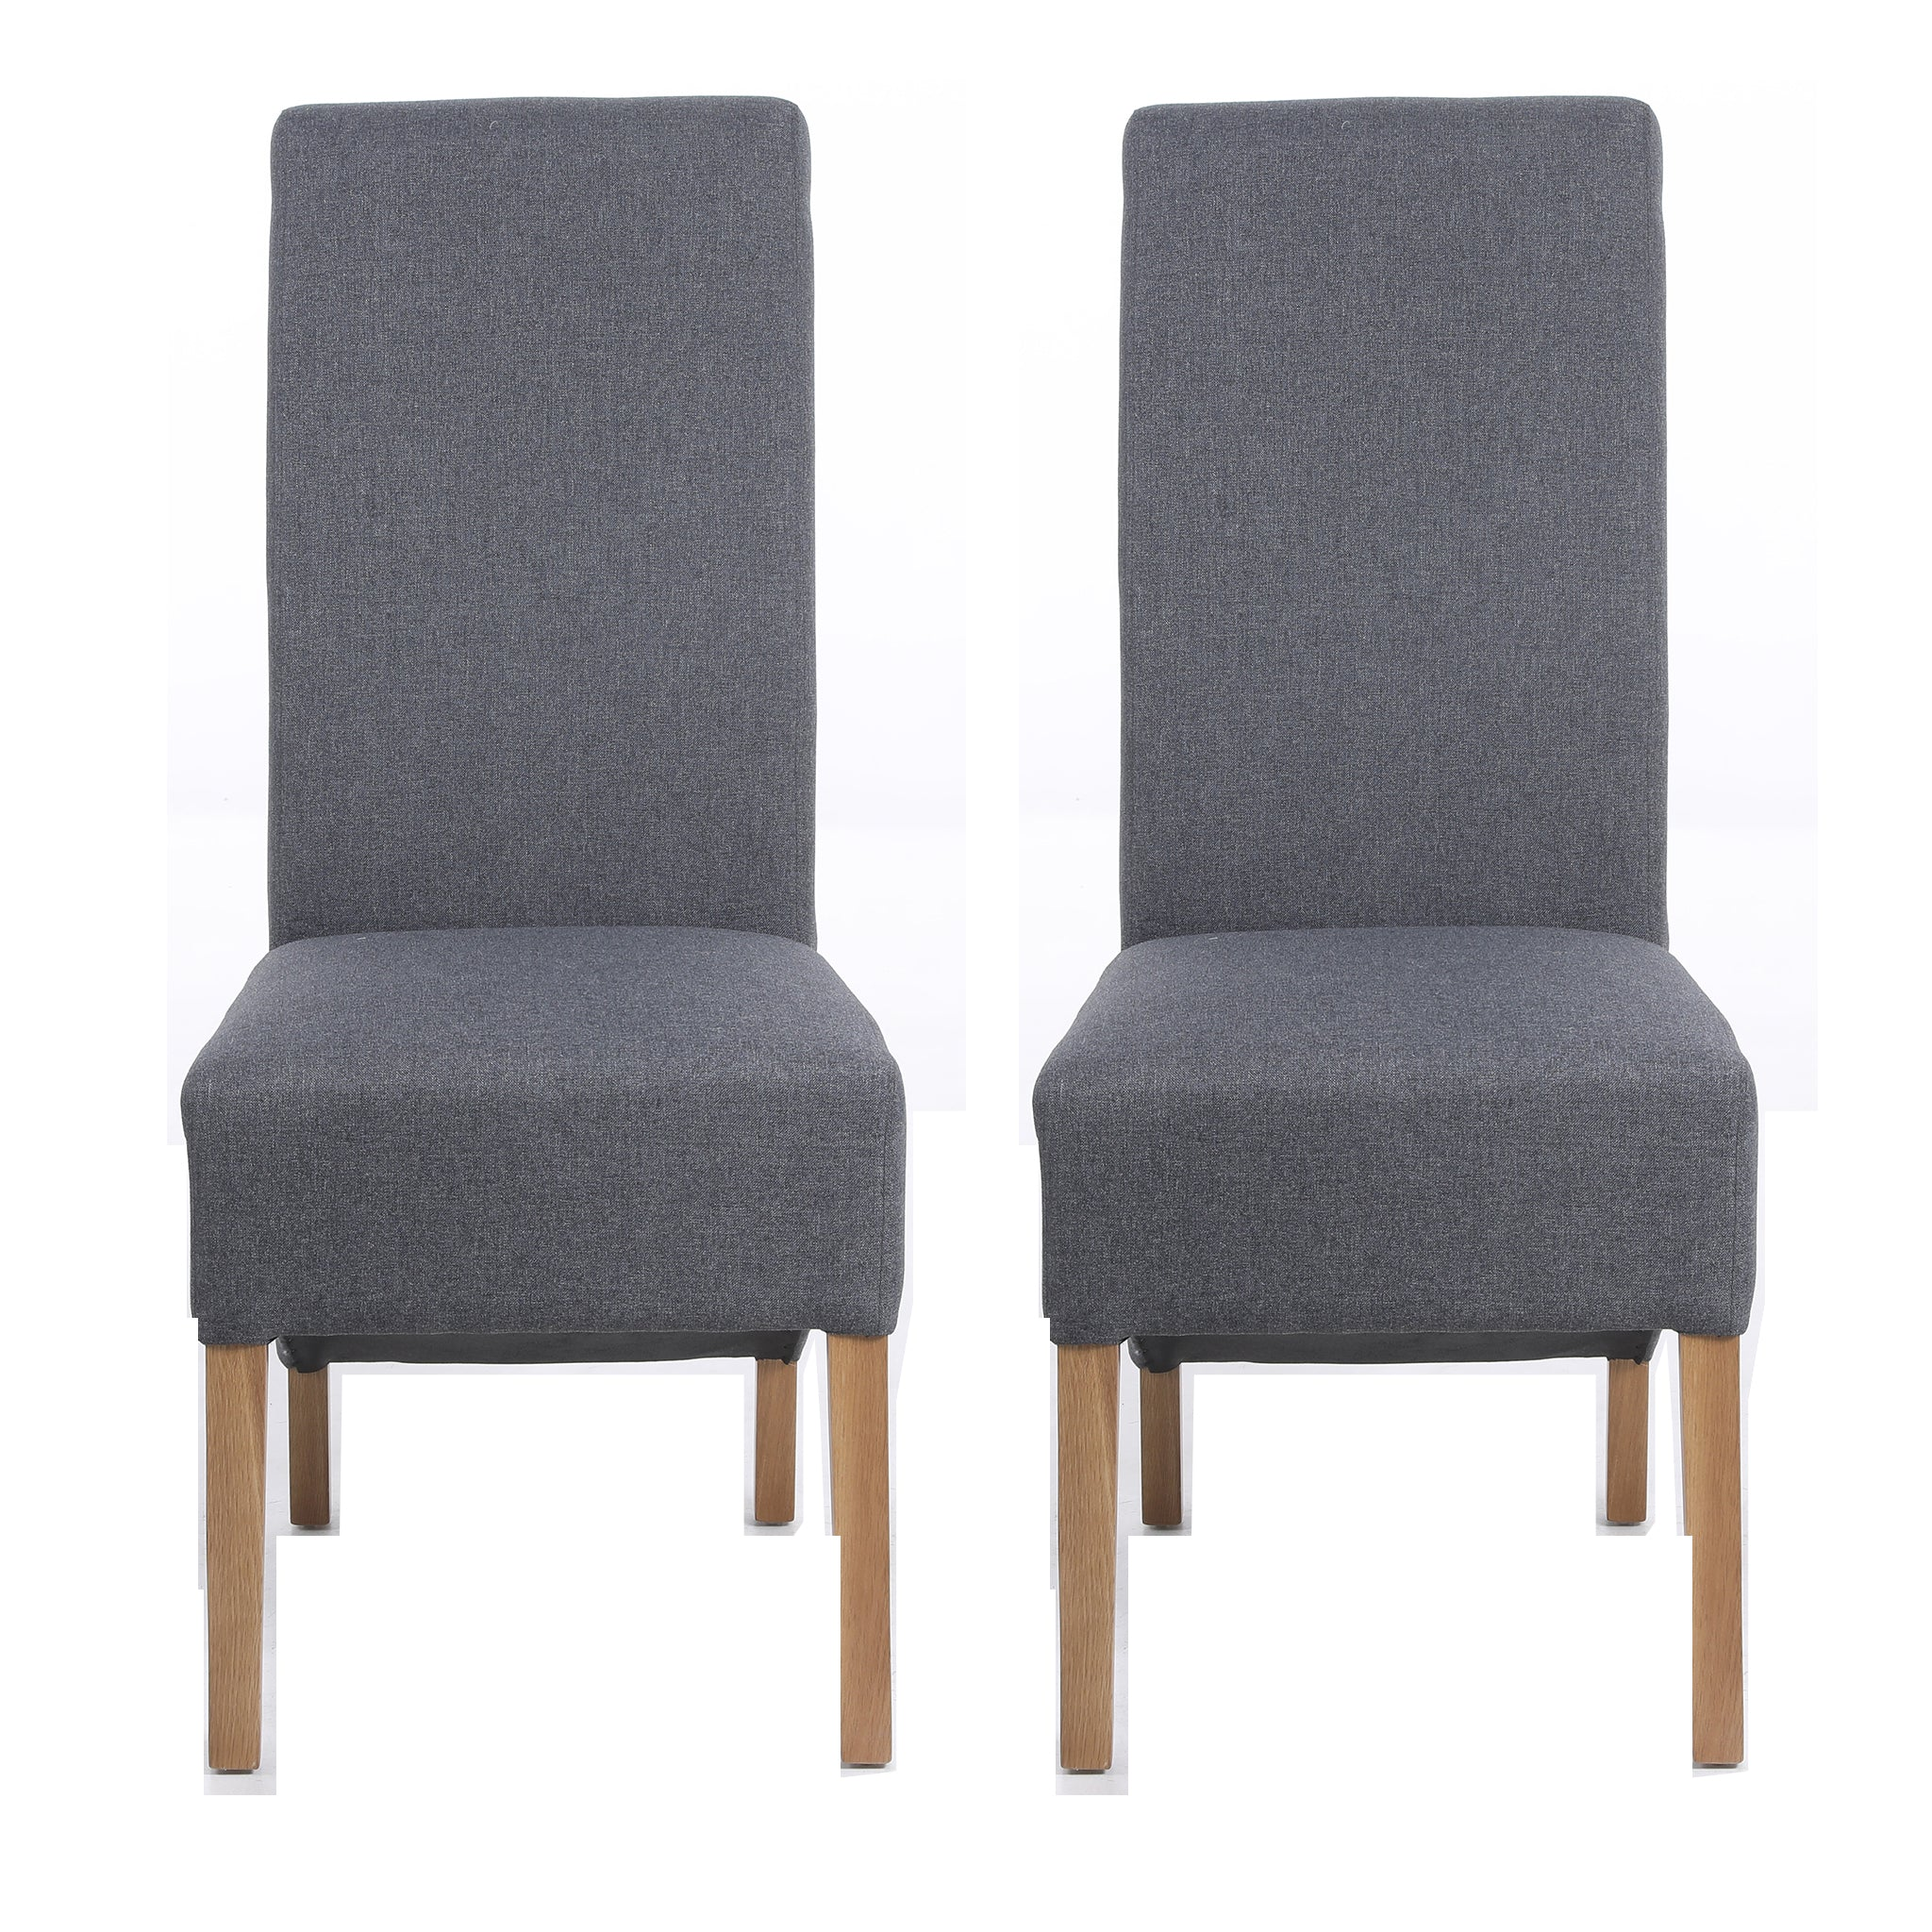 Hudson Dining Chair Grey Charcoal (Pair)